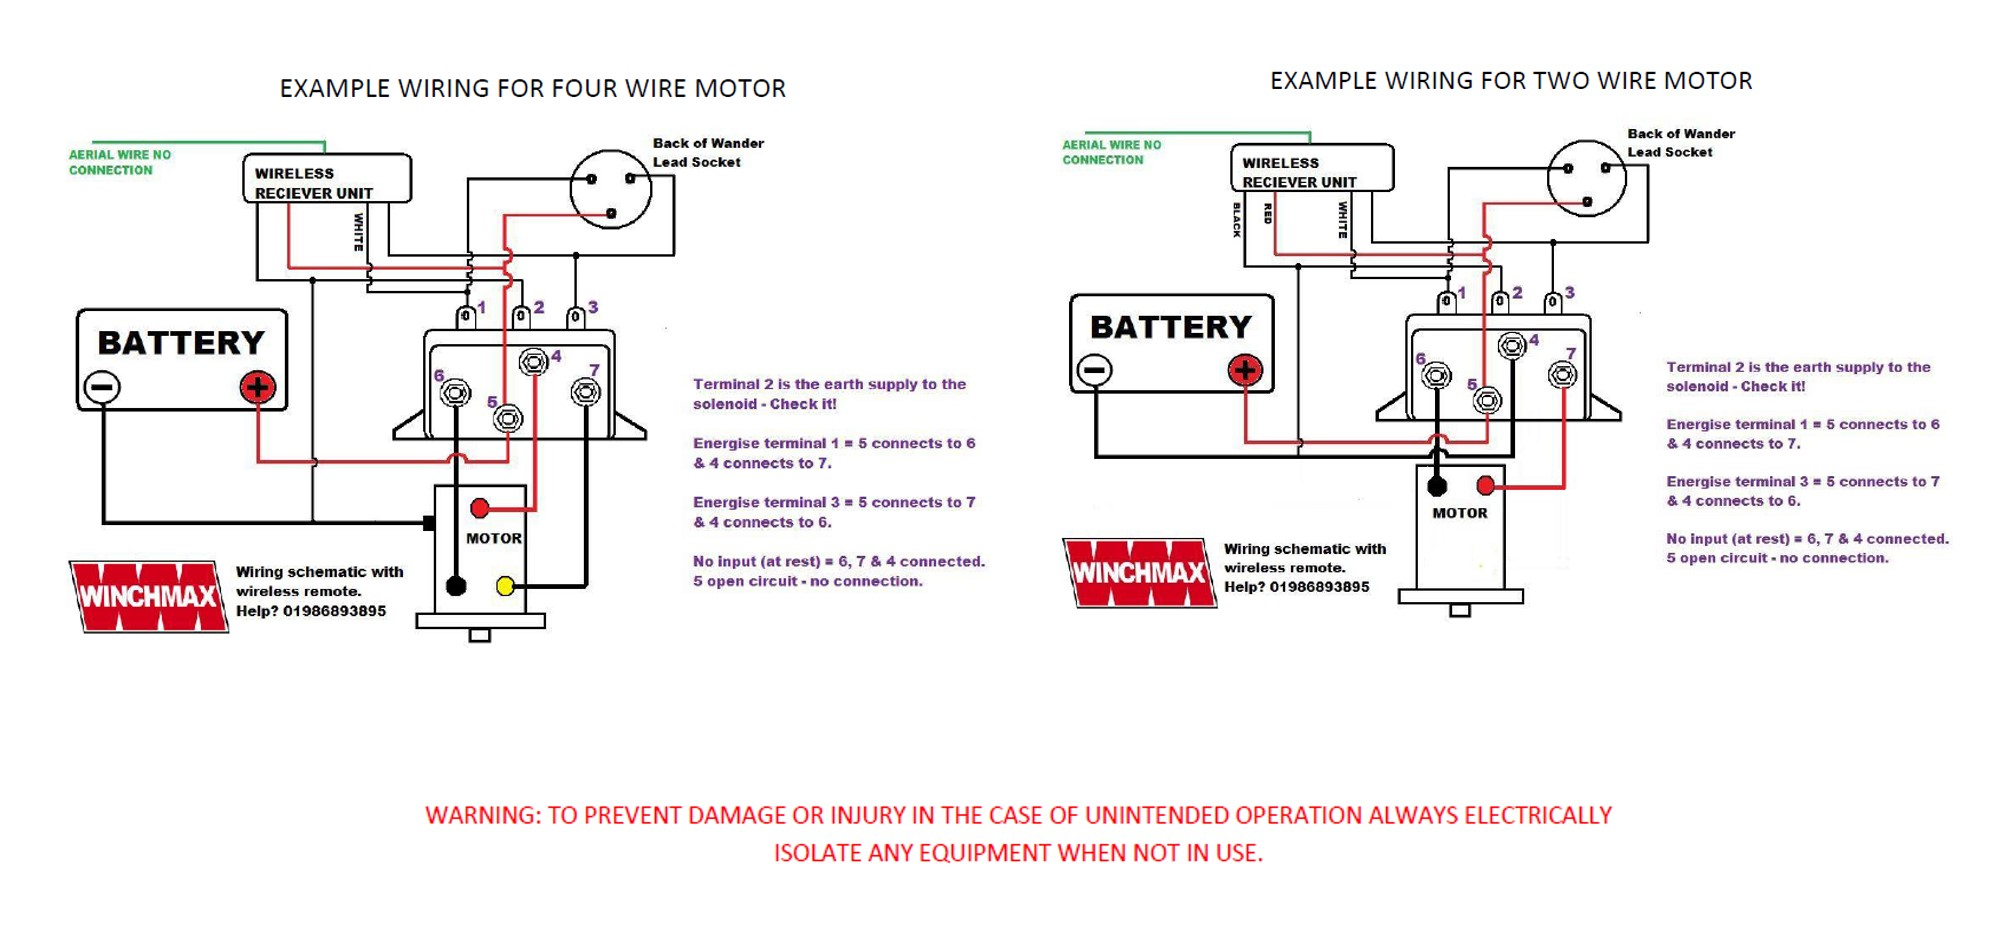 t max 9000 winch wiring diagram rj45 12 volt for a csi 1200